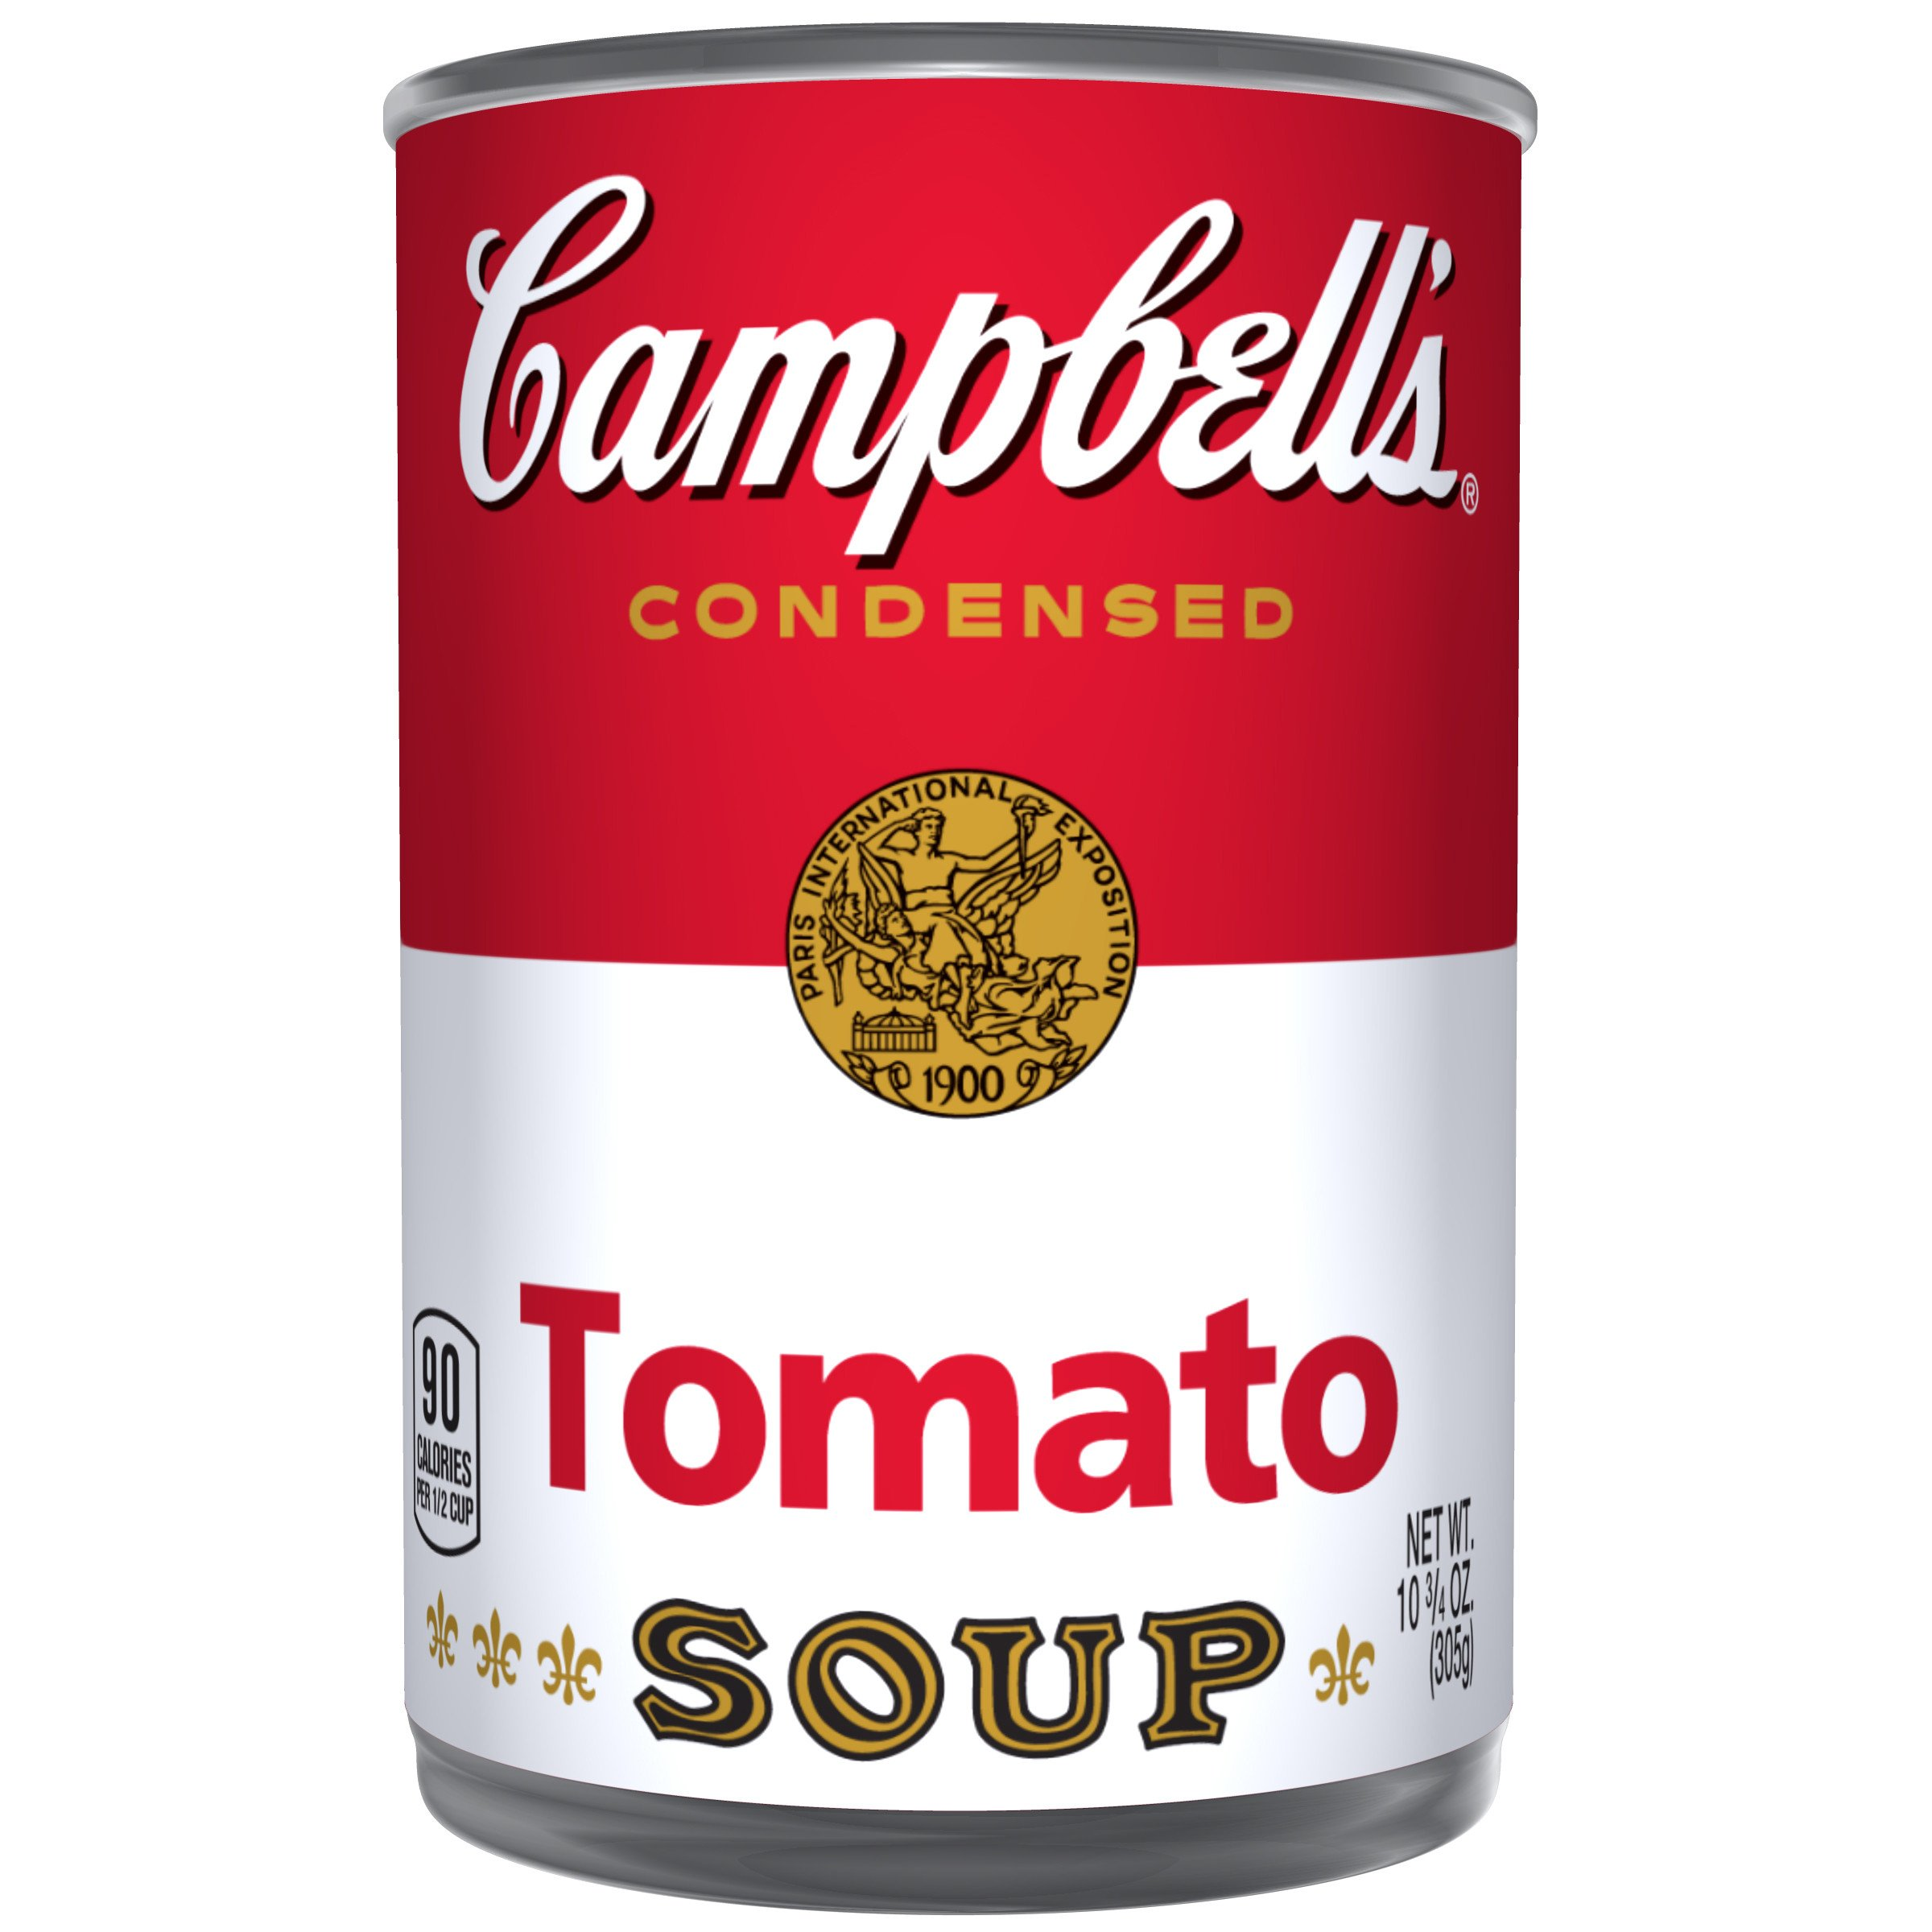 Campbell's Condensed Soup, Tomato, 10.75 oz, 6 Count by Campbell's